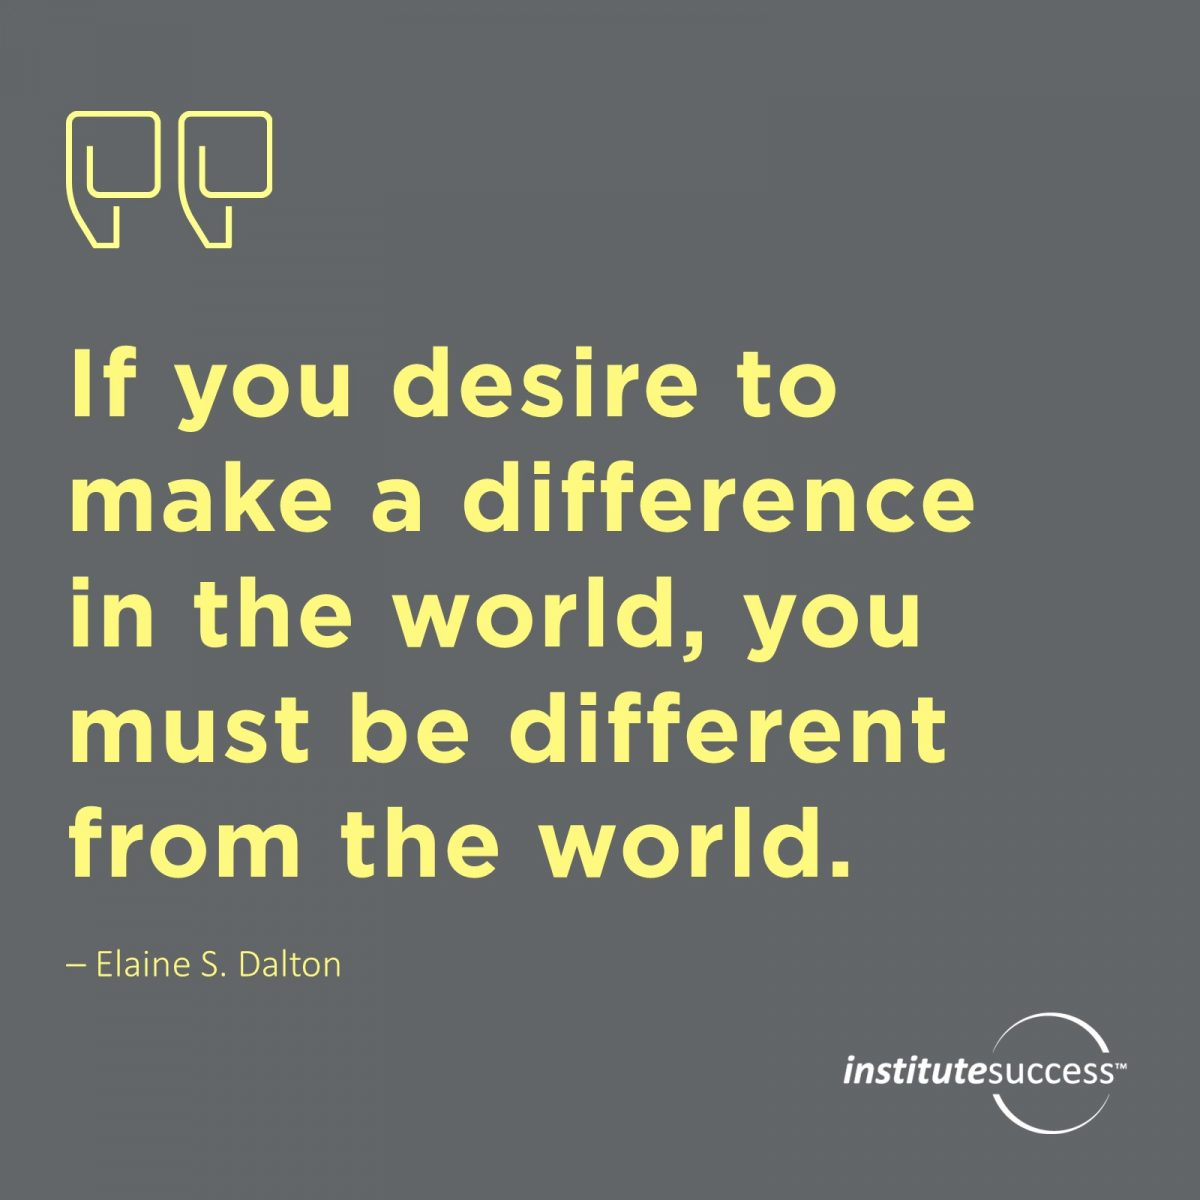 If you desire to make a difference in the world, you must be different from the world. –  Elaine S. Dalton